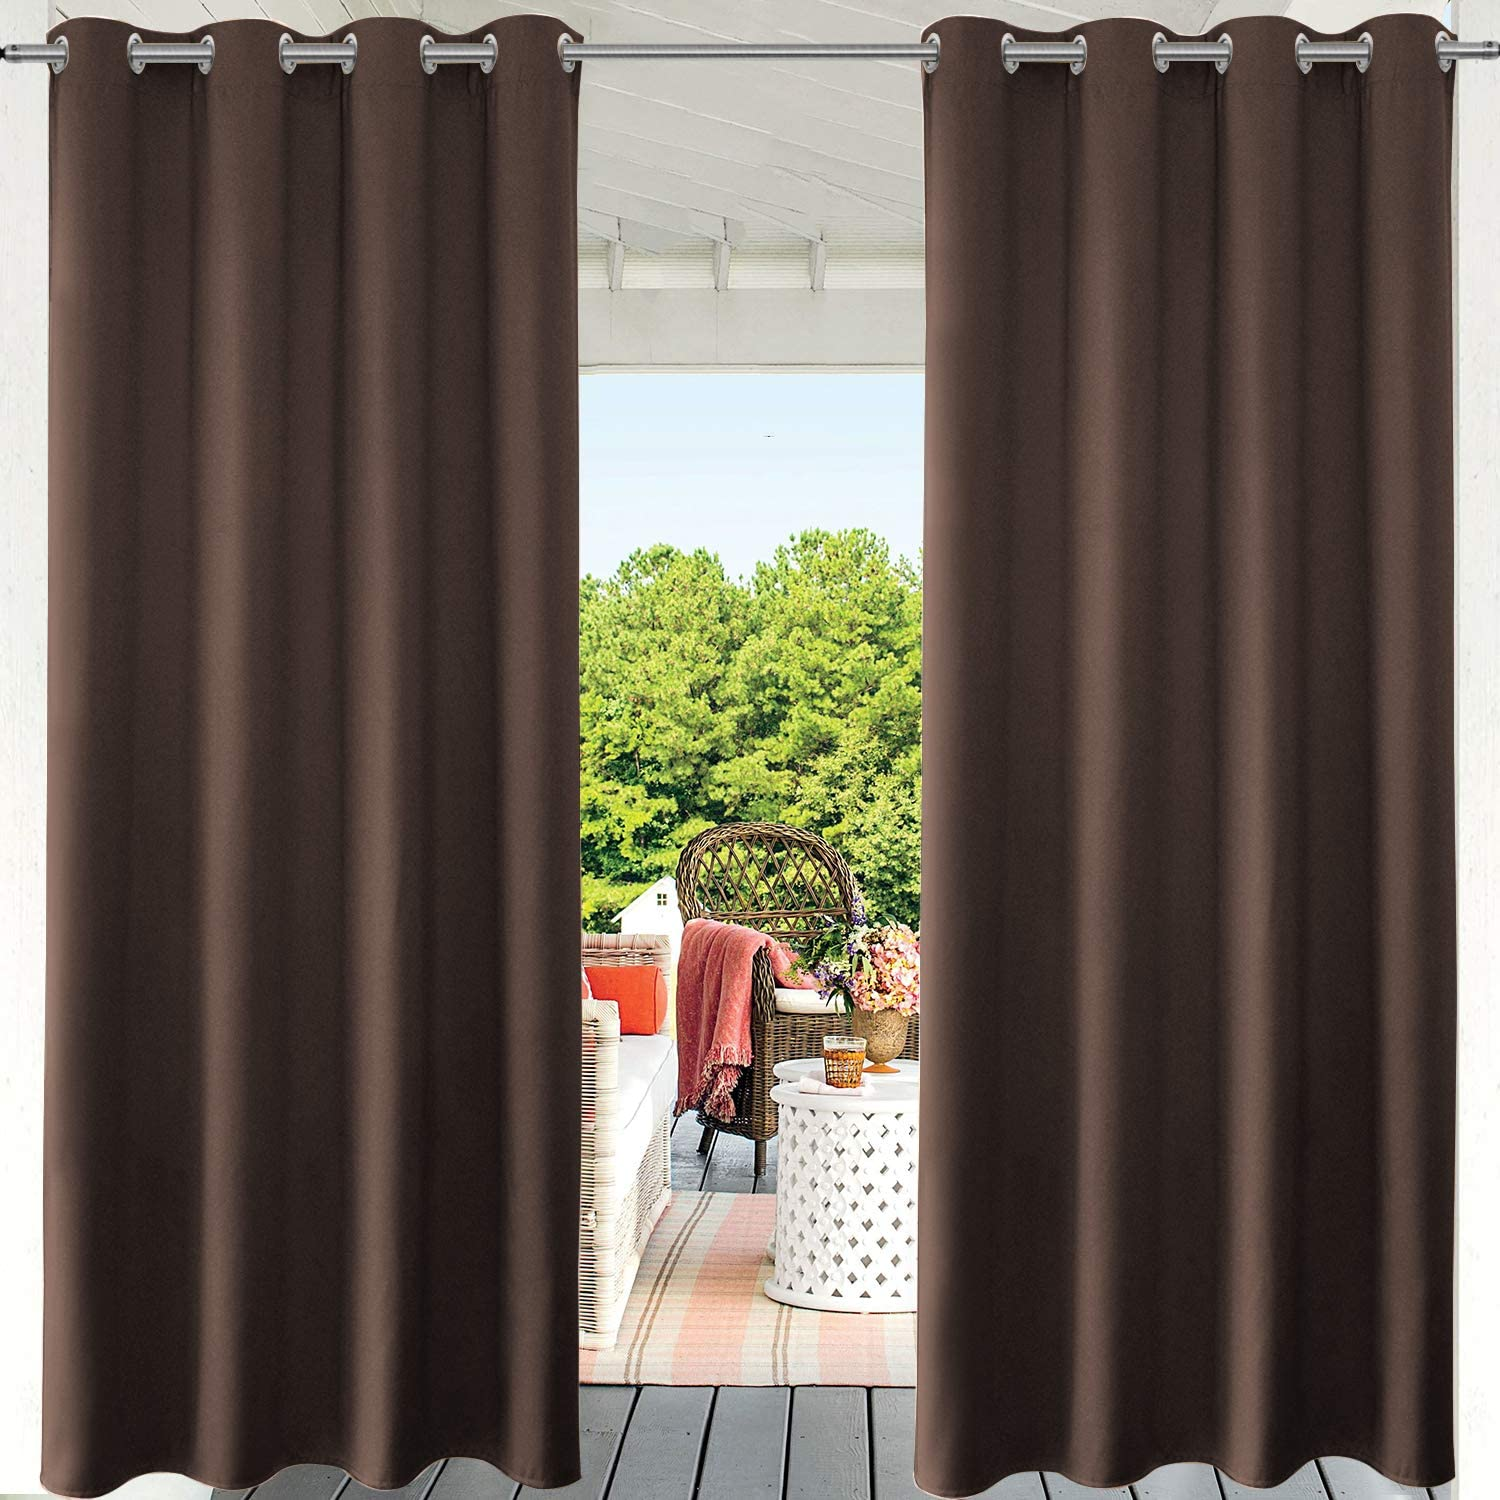 PRAVIVE Outdoor Patio Blackout Curtains - Grommet Waterproof Curtains for Outside Sun Blocking Shades for Patio Porch Blinds Privacy Pergola & Gazebo Drapes, 52